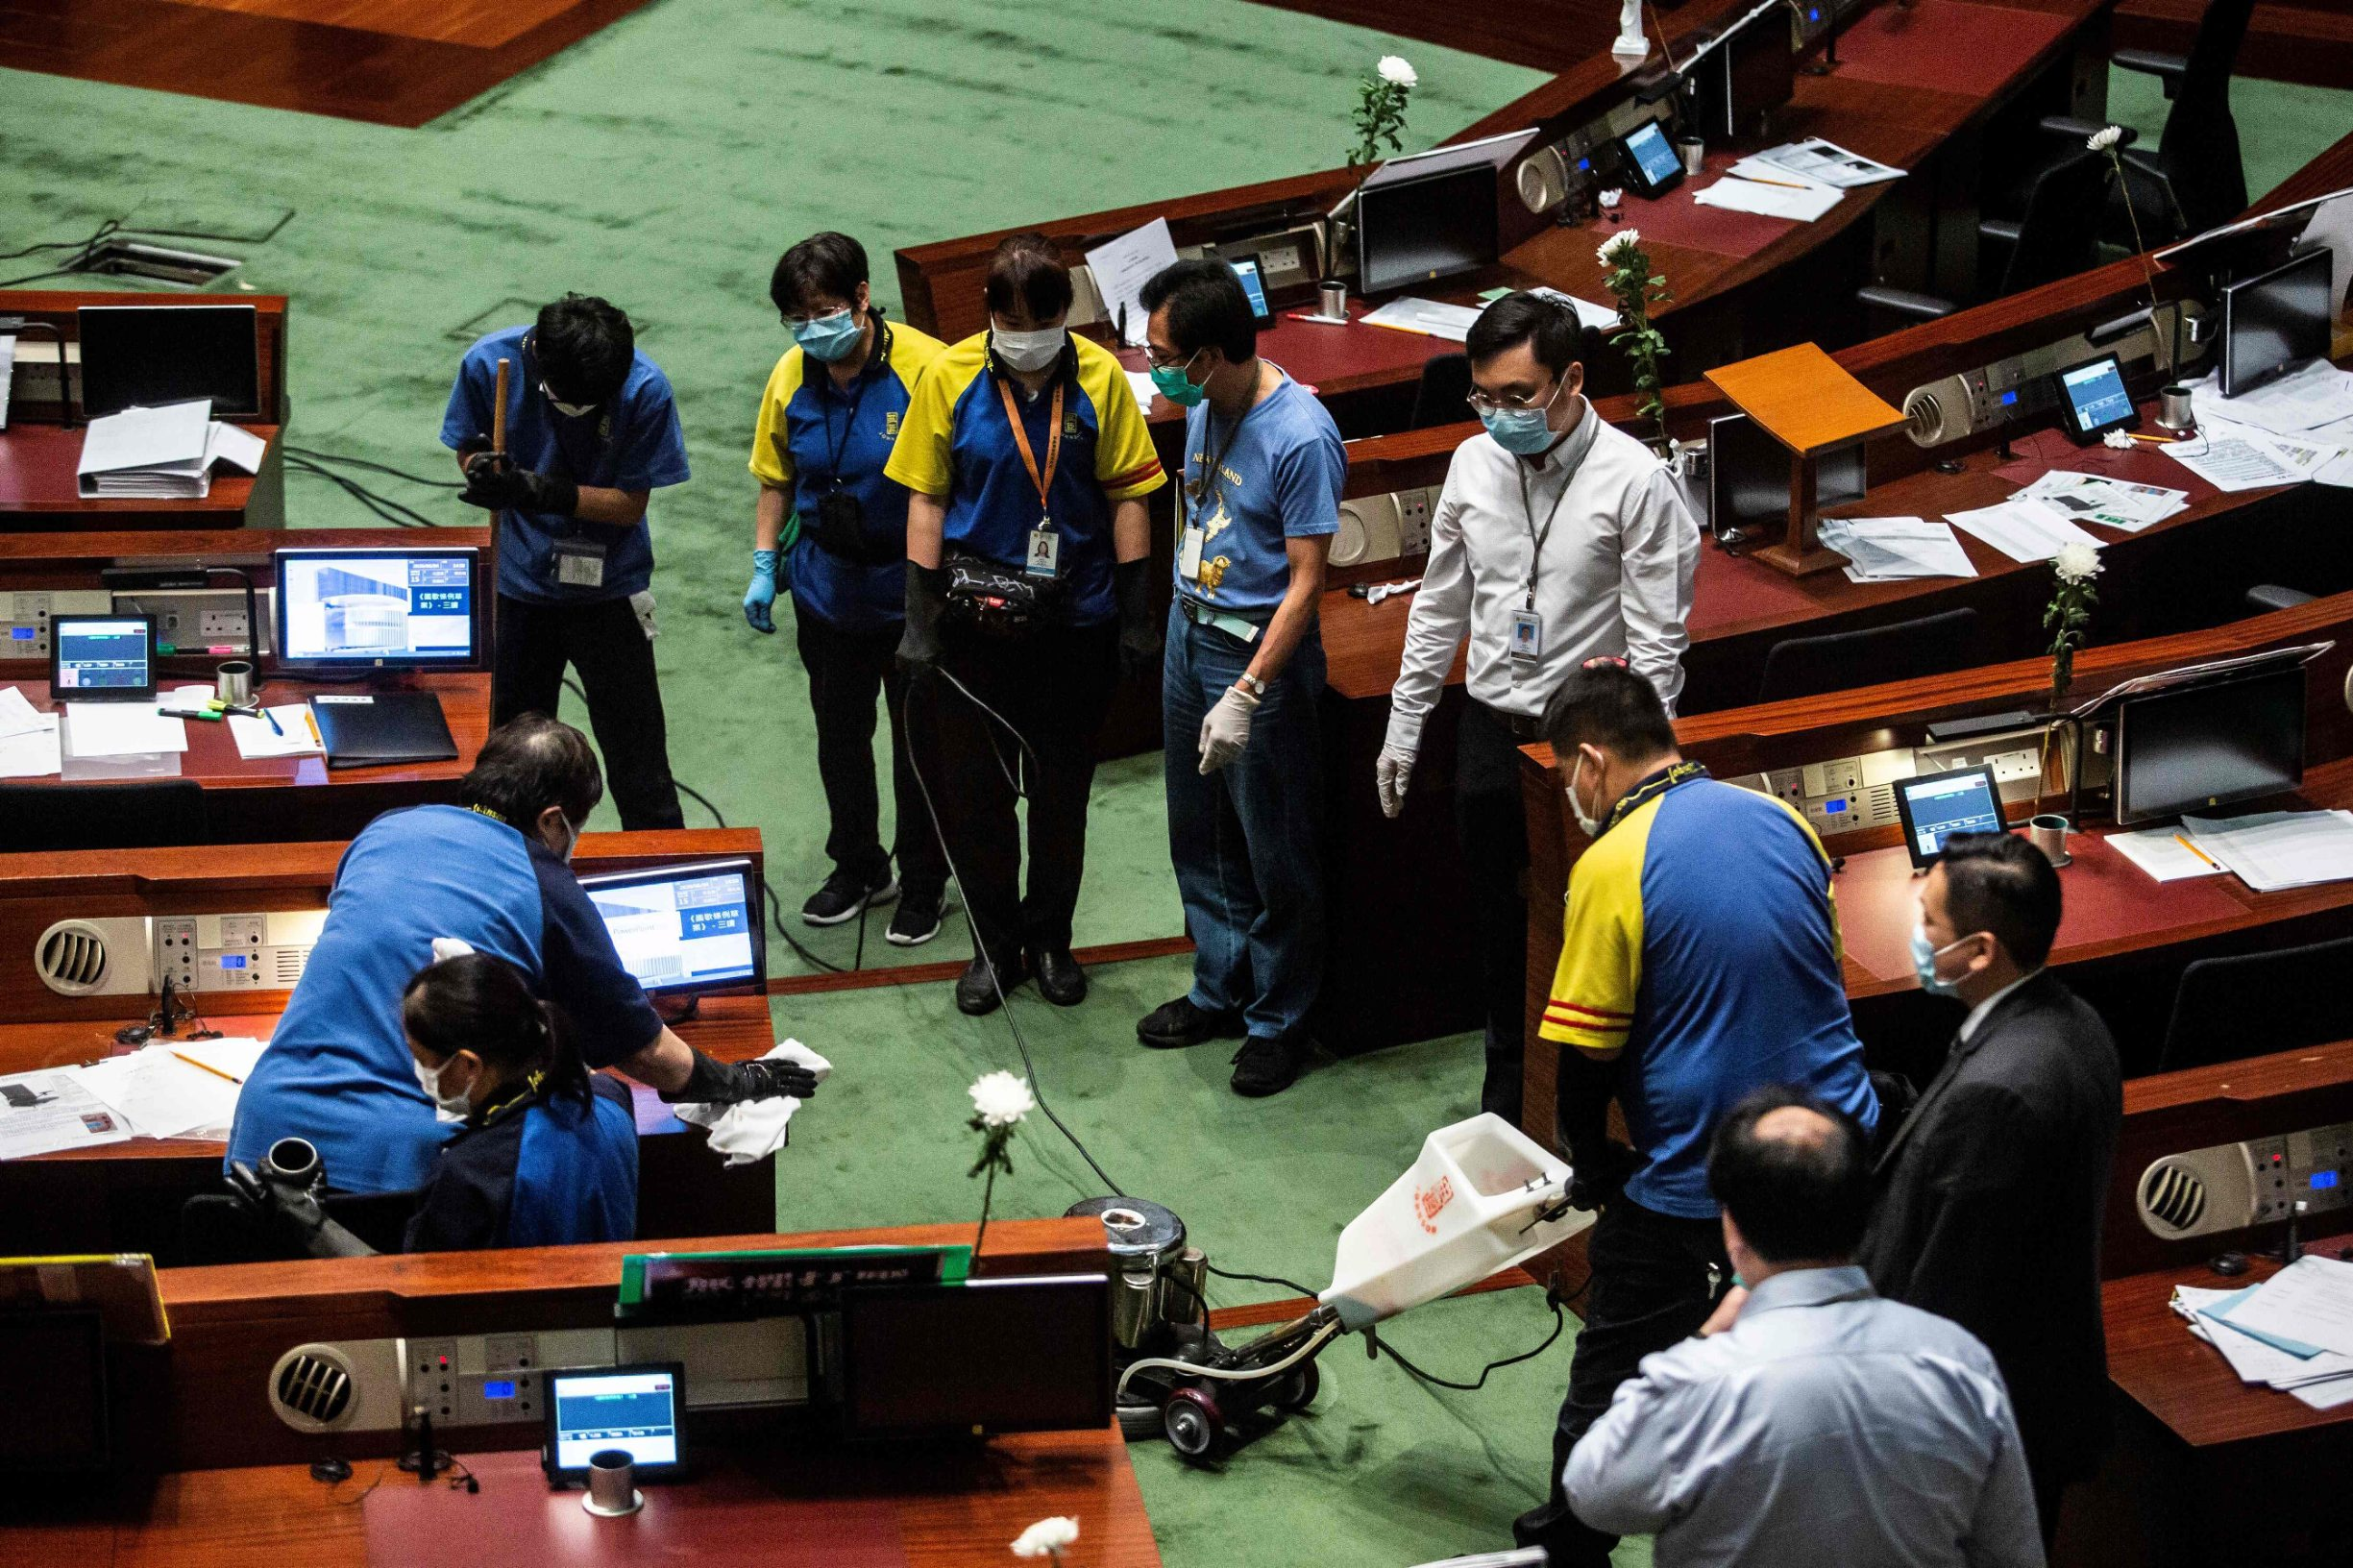 Workers clean a section in the main chamber of the Legislative Council after pan-democrat lawmakers hurled an odorous liquid during the third reading of the national anthem bill in Hong Kong on June 4, 2020, ahead of a vote over a law that bans insulting China's national anthem. (Photo by ISAAC LAWRENCE / AFP)